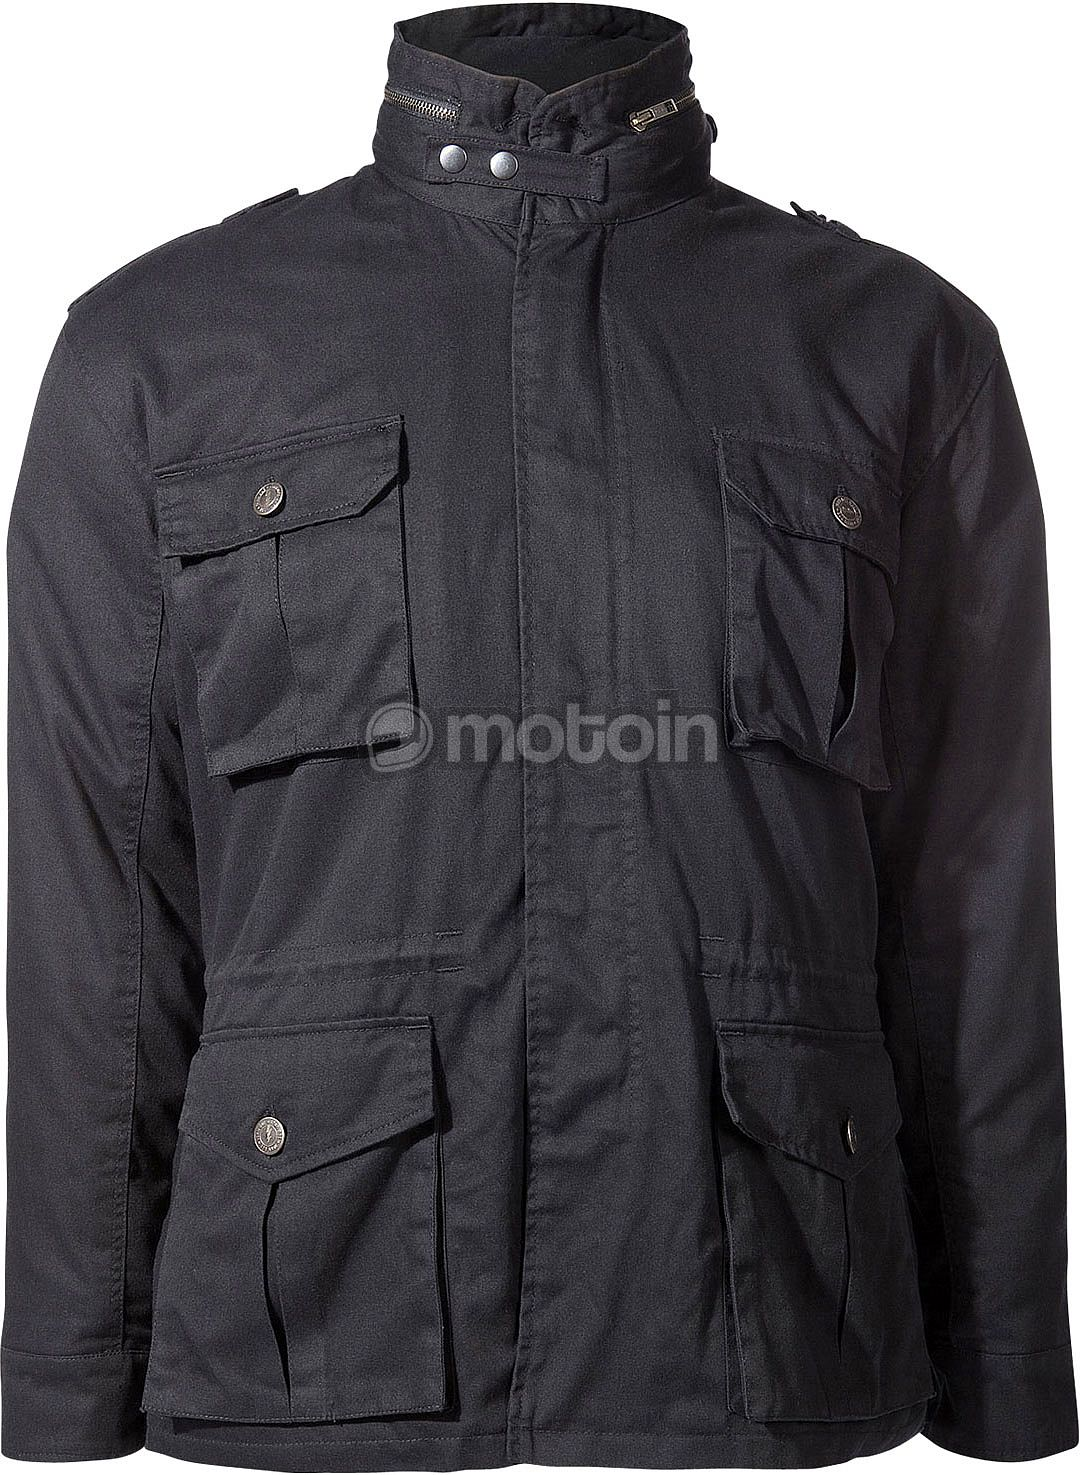 john doe fieldjacket textiljacke